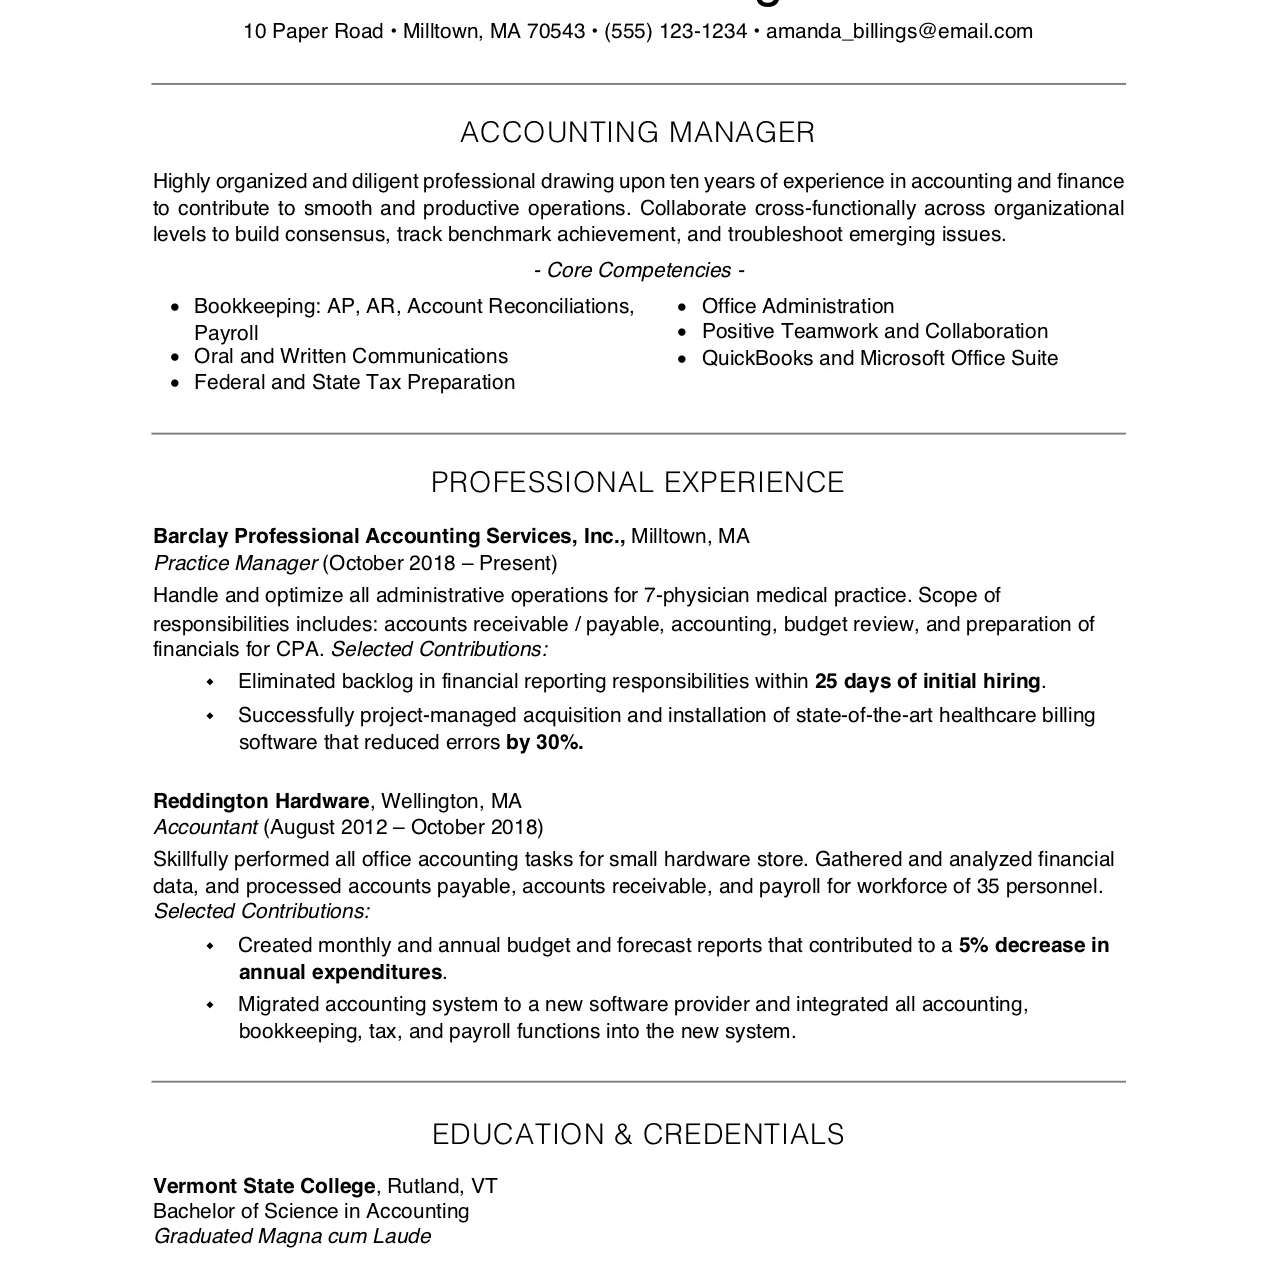 free professional resume examples and writing tips employment template 2063596res1 Resume Employment Resume Template